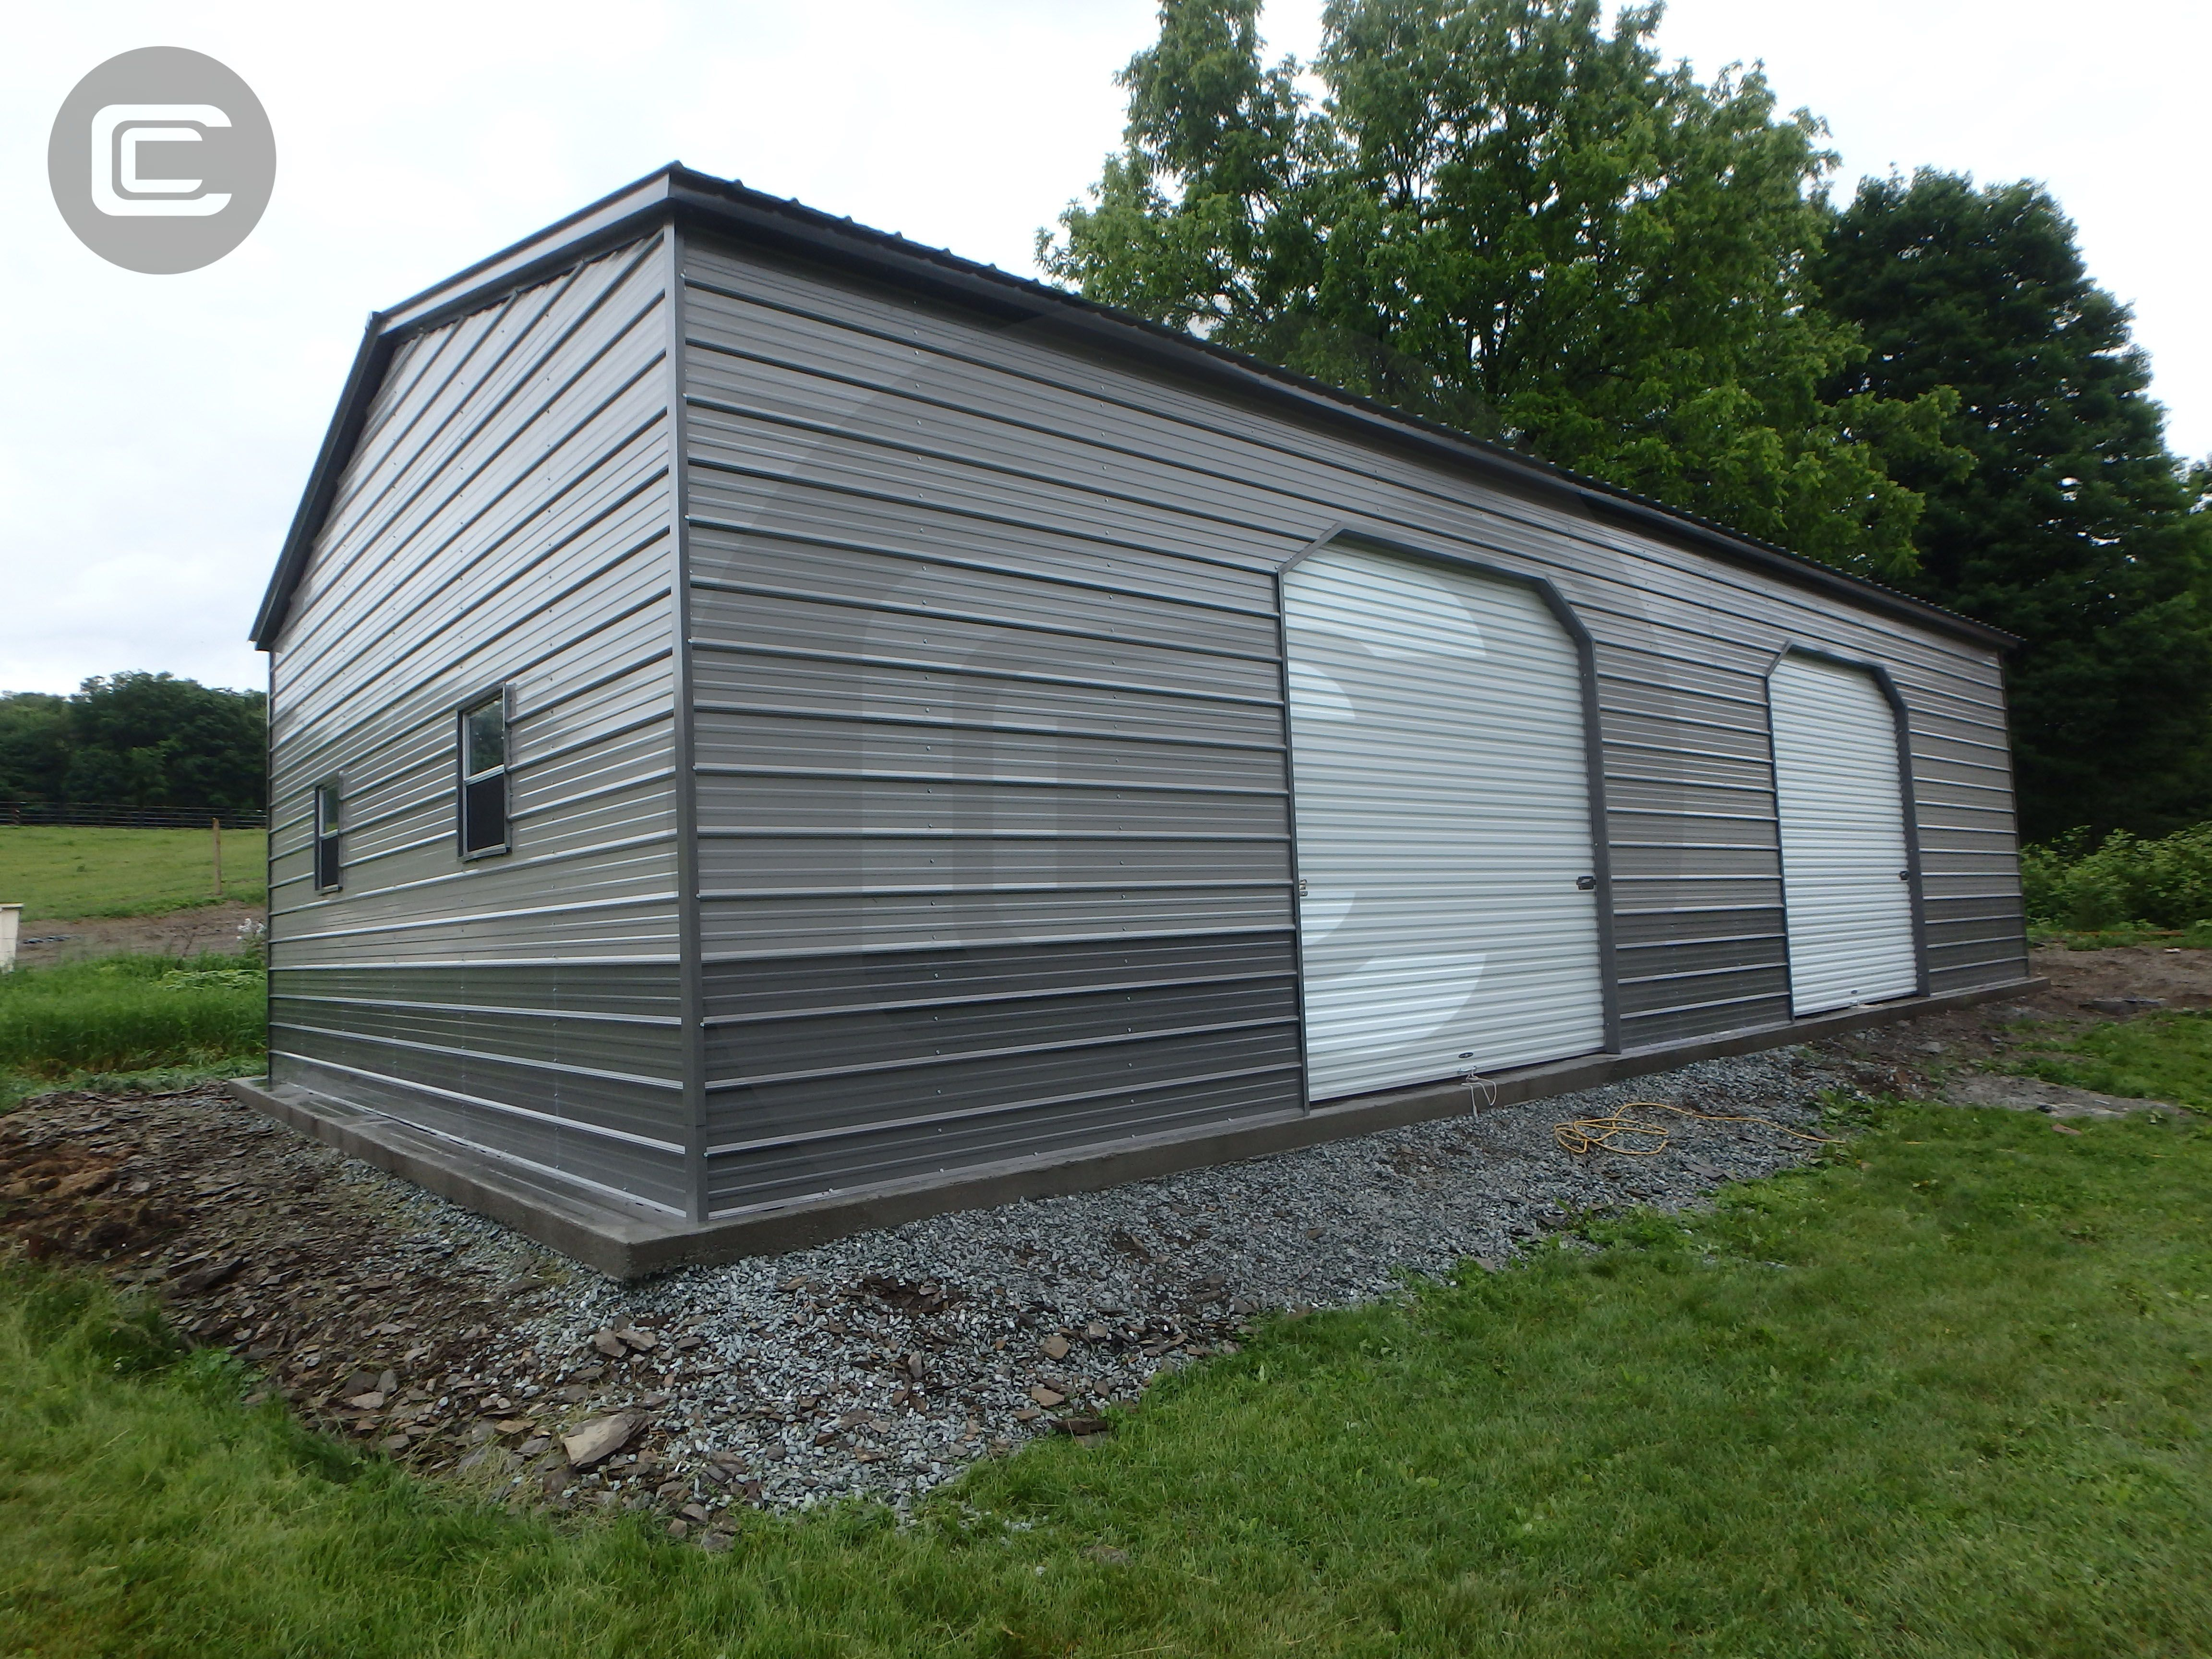 Carport Central's Install of the week is this two-tone metal garage. This structure has two side entries, and features a vertical roof. The actual measurements of this garage are 30'W x 40'L x 12'H and includes two 45-degree cut 10'x10' roll-up garage doors and two windows on the end wall. To get a building fully customized, give us a call at 866-761-1171.   #Garage #MetalStructure #CarportCentral #Customizable #BBBTorchAwardWinner #Fast50